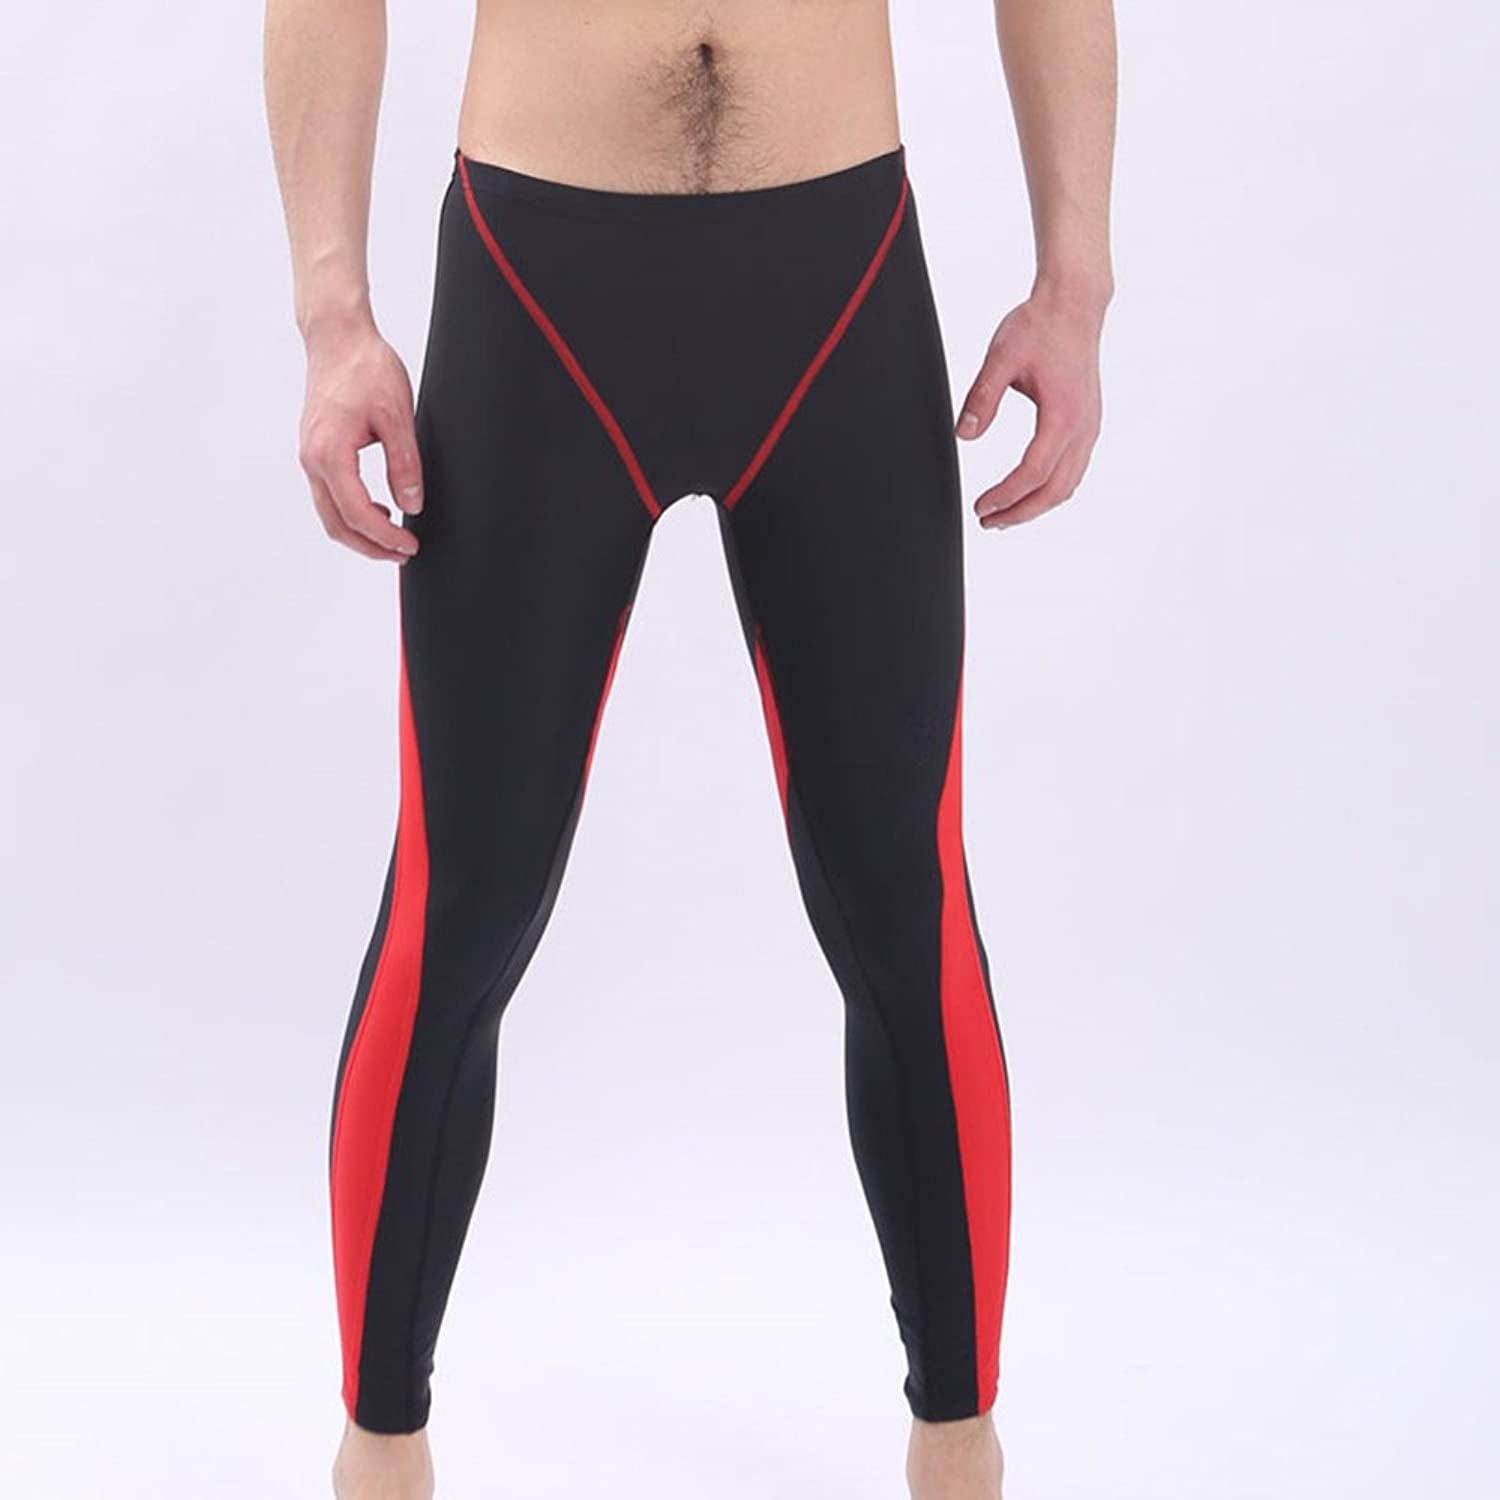 Xiaoxiaozhang Professional Training Wettbewerb Lange Badehose Herren Badehose, Badehose, Badehose, L B07F7Z1DMS  Langfristiger Ruf d5024c